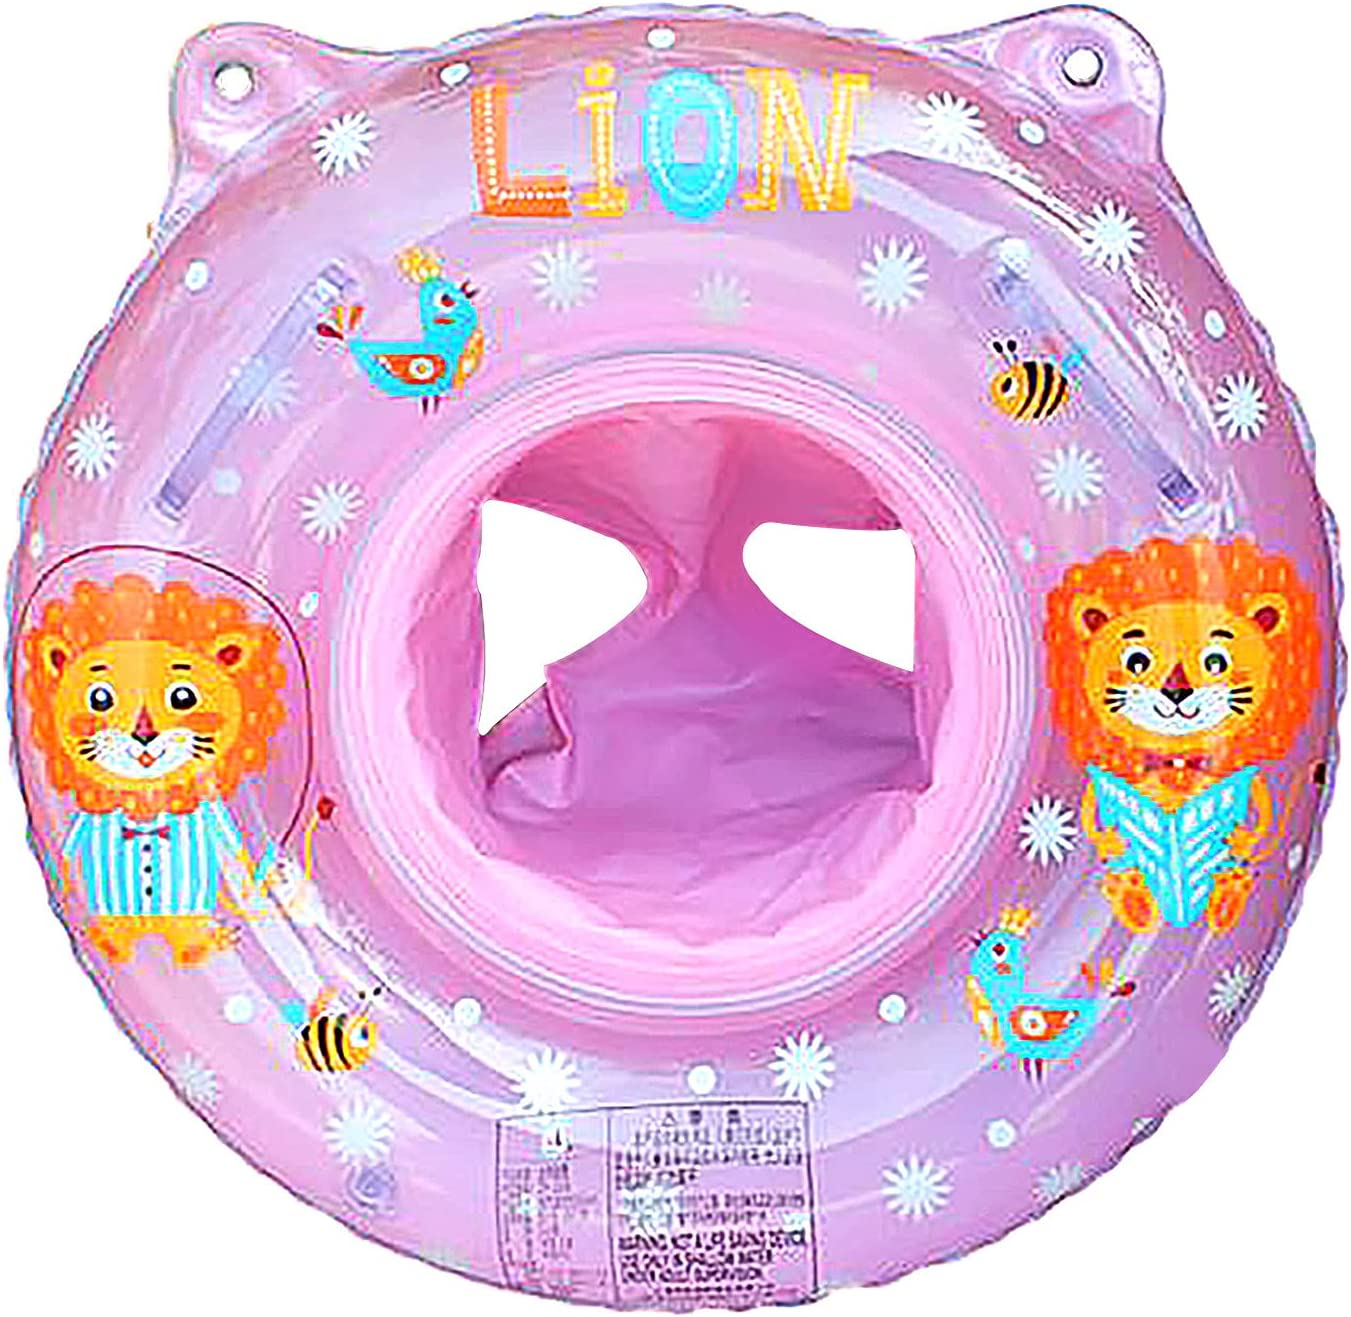 Houston Tampa Mall Mall ninRYA Baby Swimming Float Ring Pool Seat with Inflatable